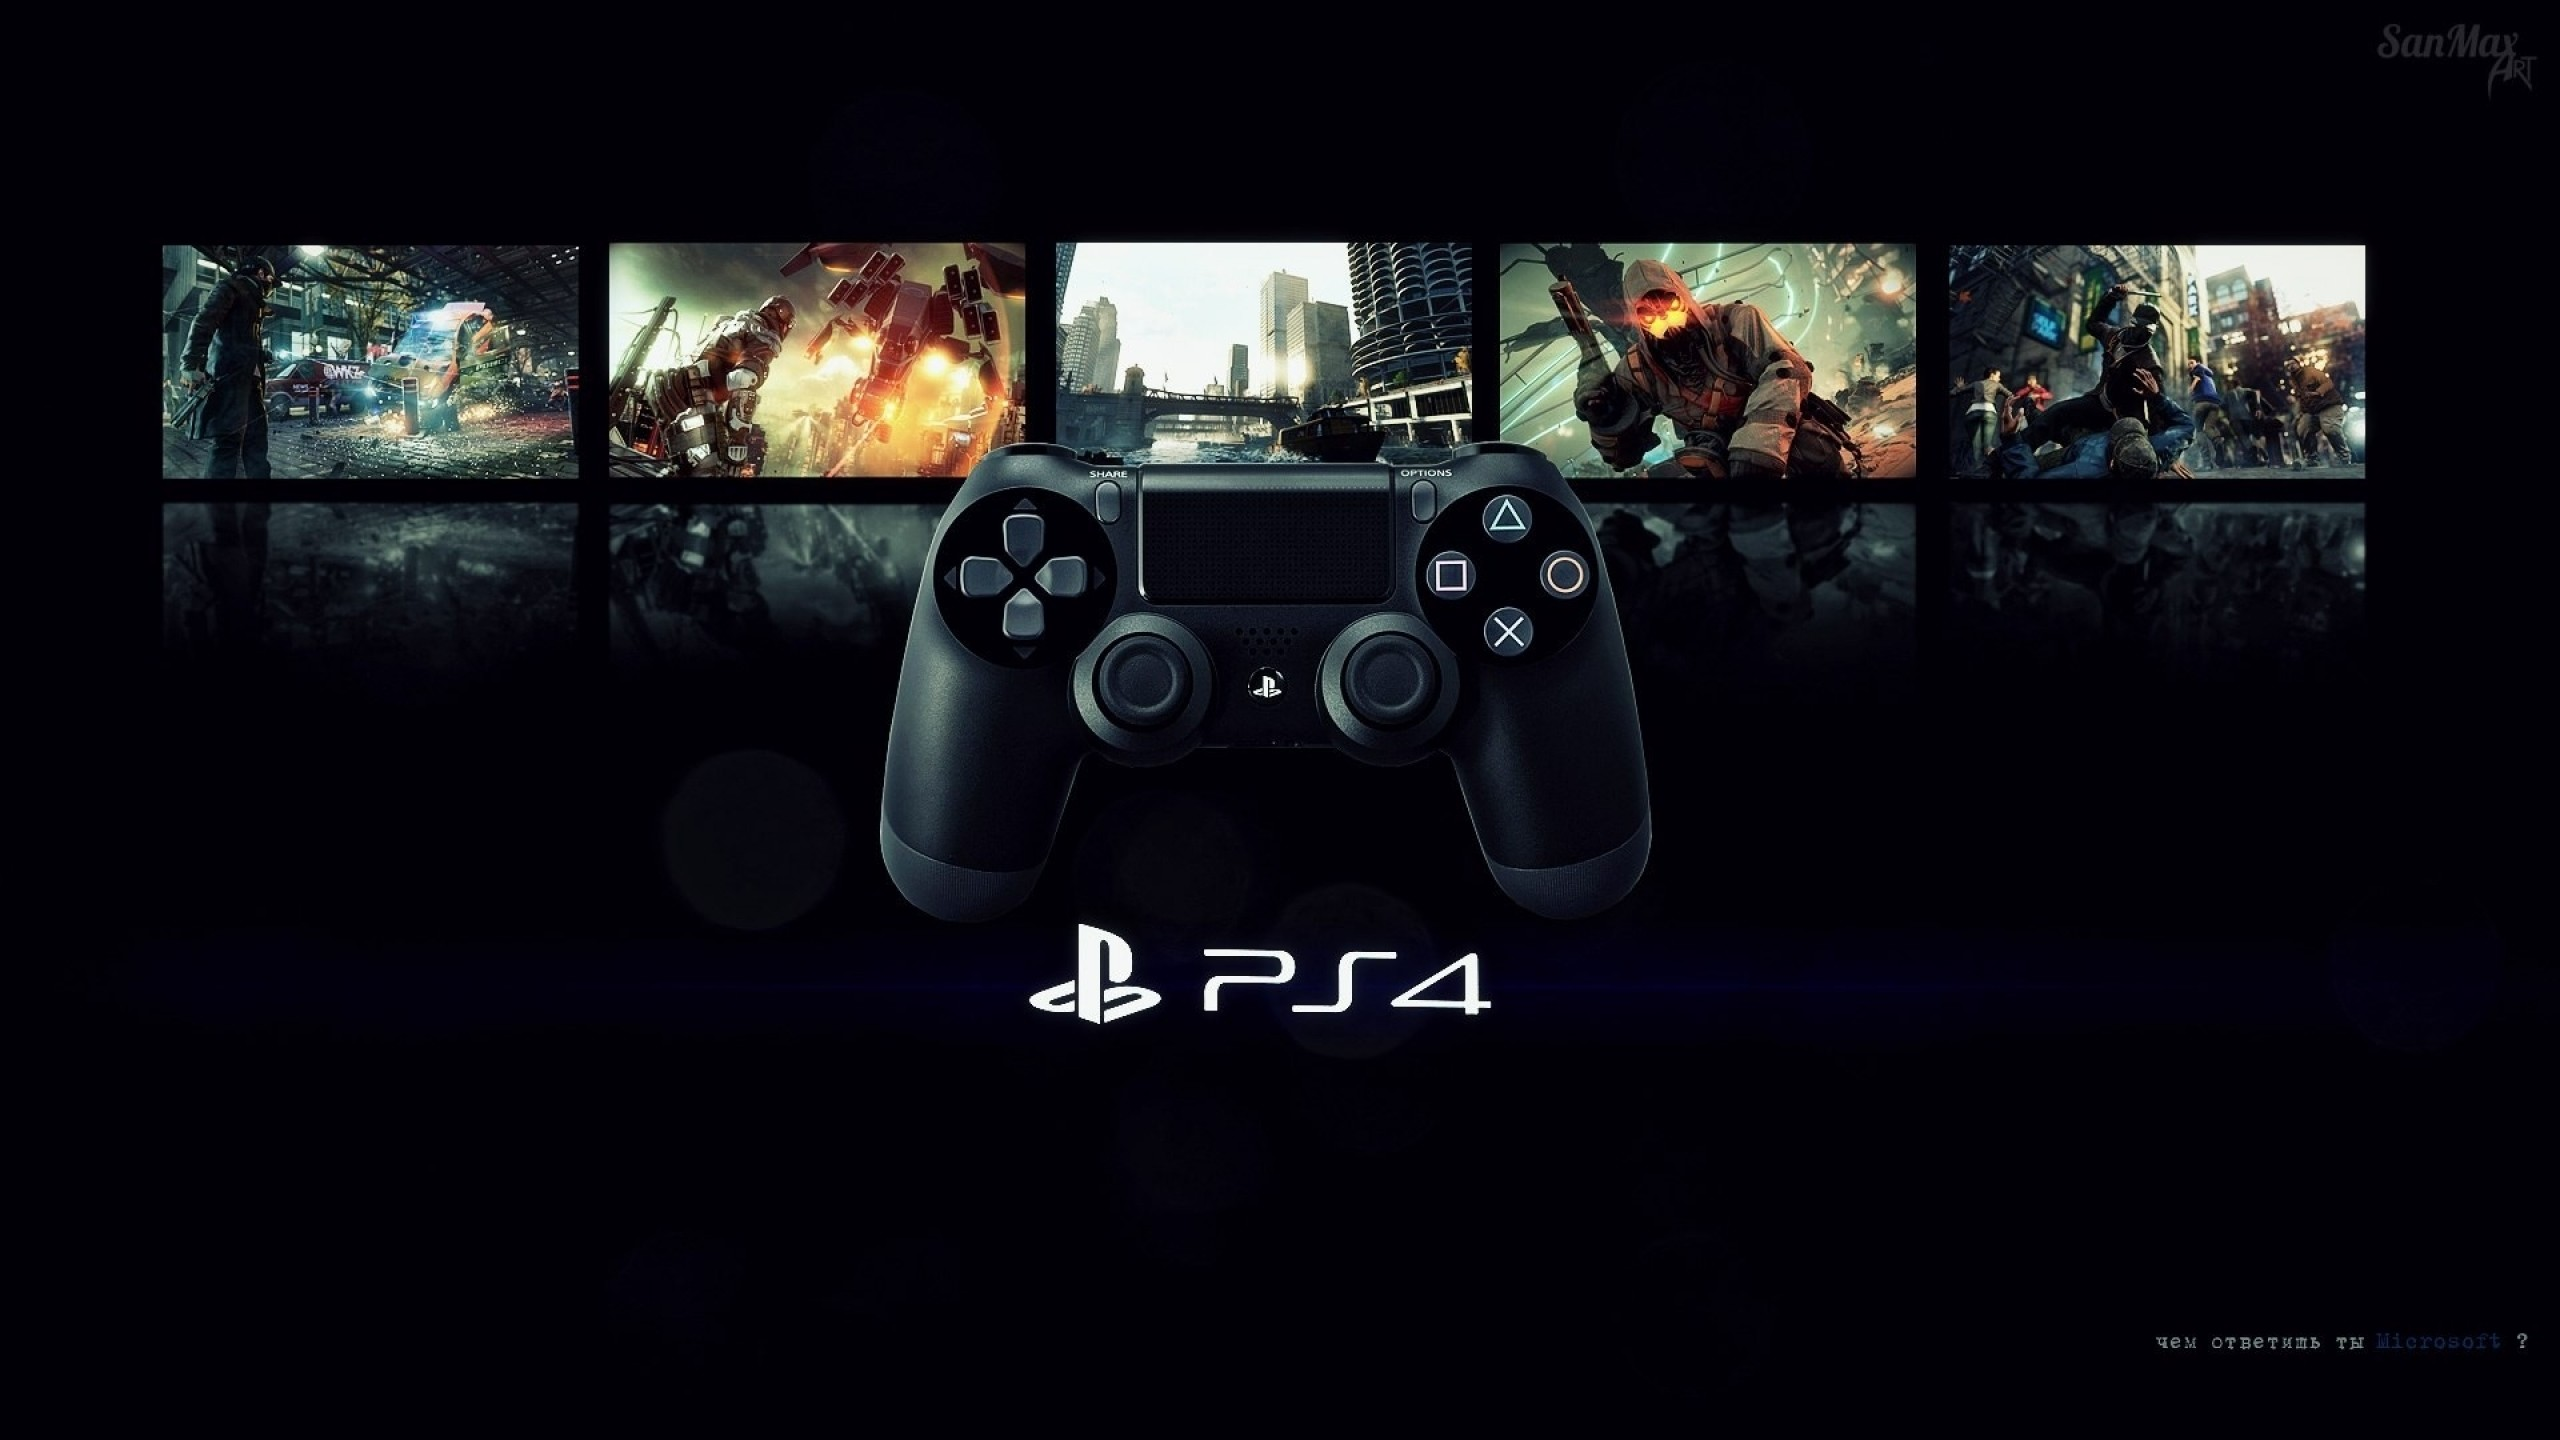 Res: 2560x1440, Download Wallpapers, Download  video games sony ps4 .